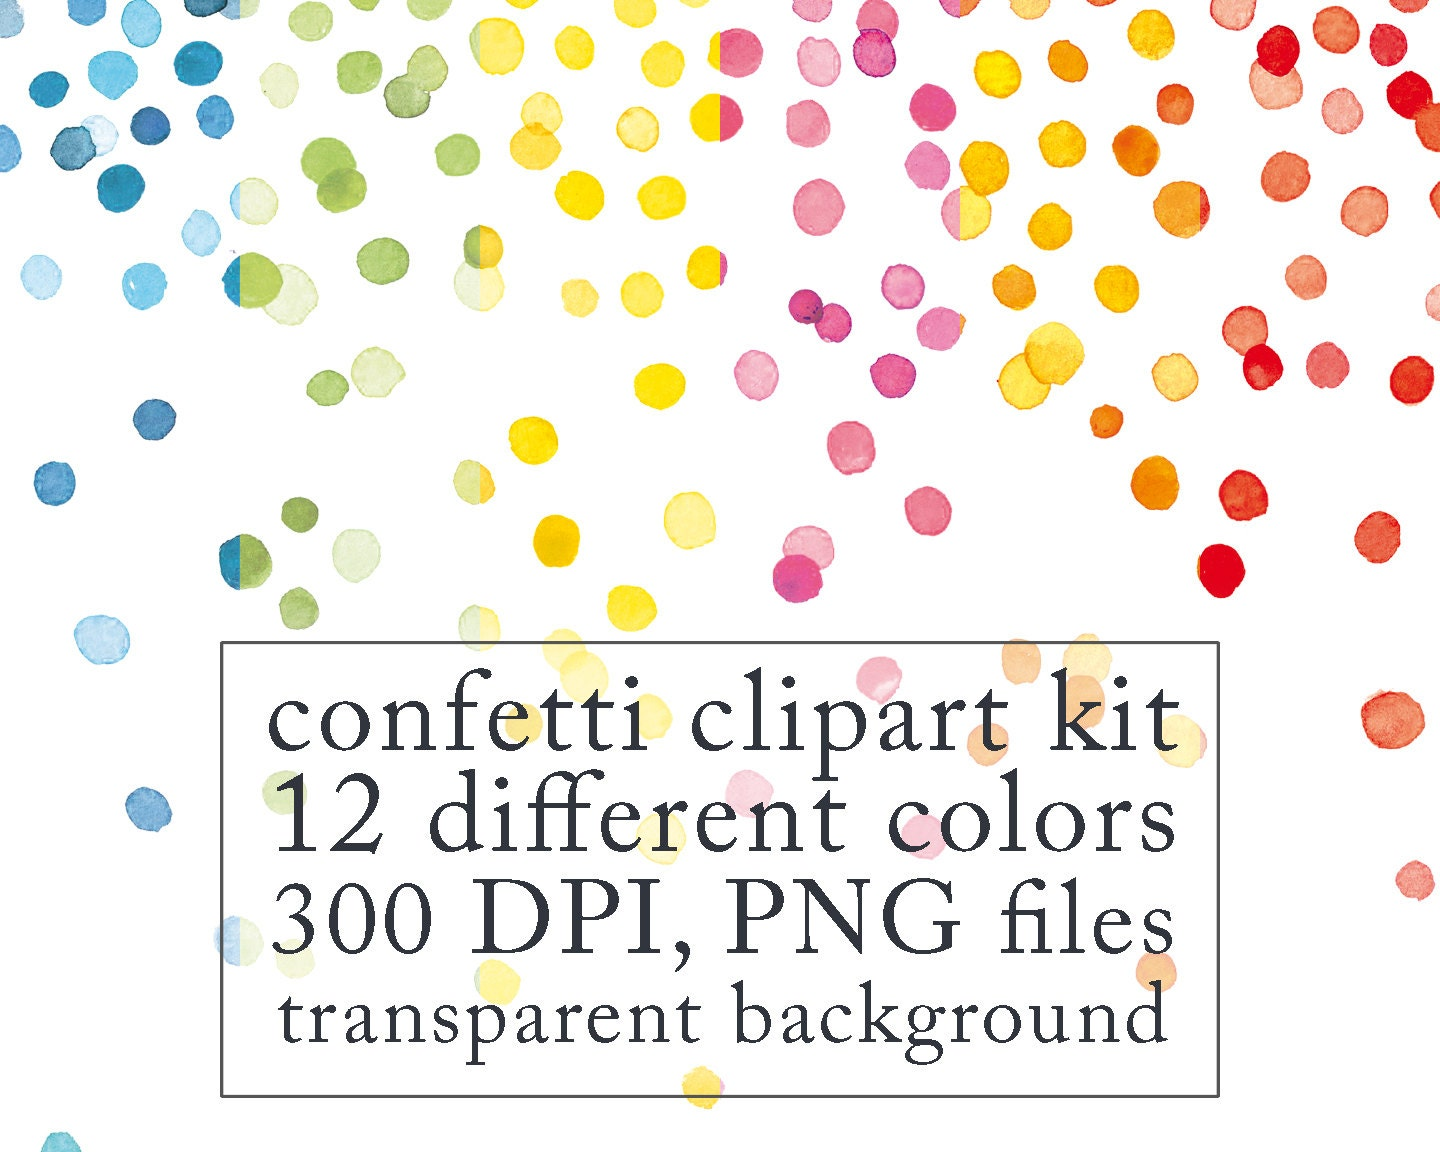 Watercolor confetti clipart digital clip art by swiejkoforprint